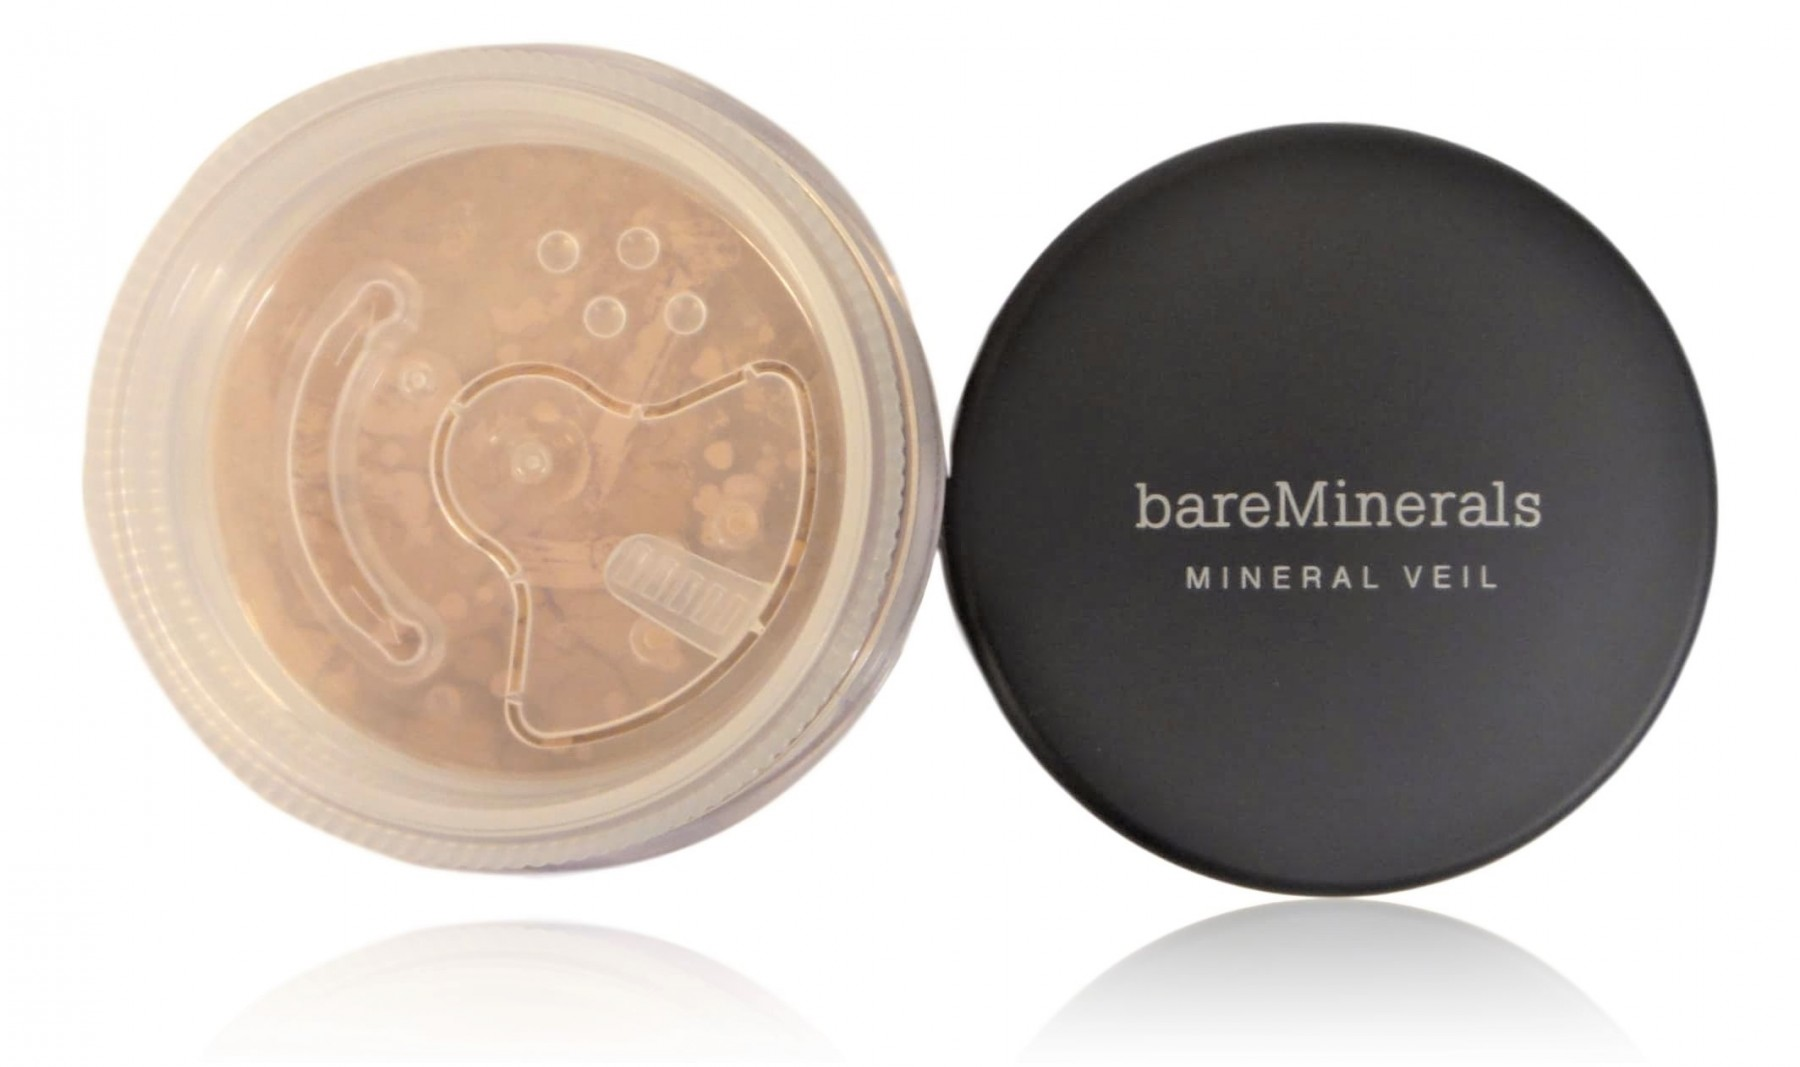 bareMinerals Mineral Veil - I've used this product on and off for the last 10 years, and it's not leaving the rotation anytime soon. I love bareMinerals for a variety of reasons, but this specific product minimizes lines, absorbs oil, and gives this amazing flawless finish that is so, so good. Plus it does a great job of setting my other makeup or minimizing overzealous blush application.Price: $23